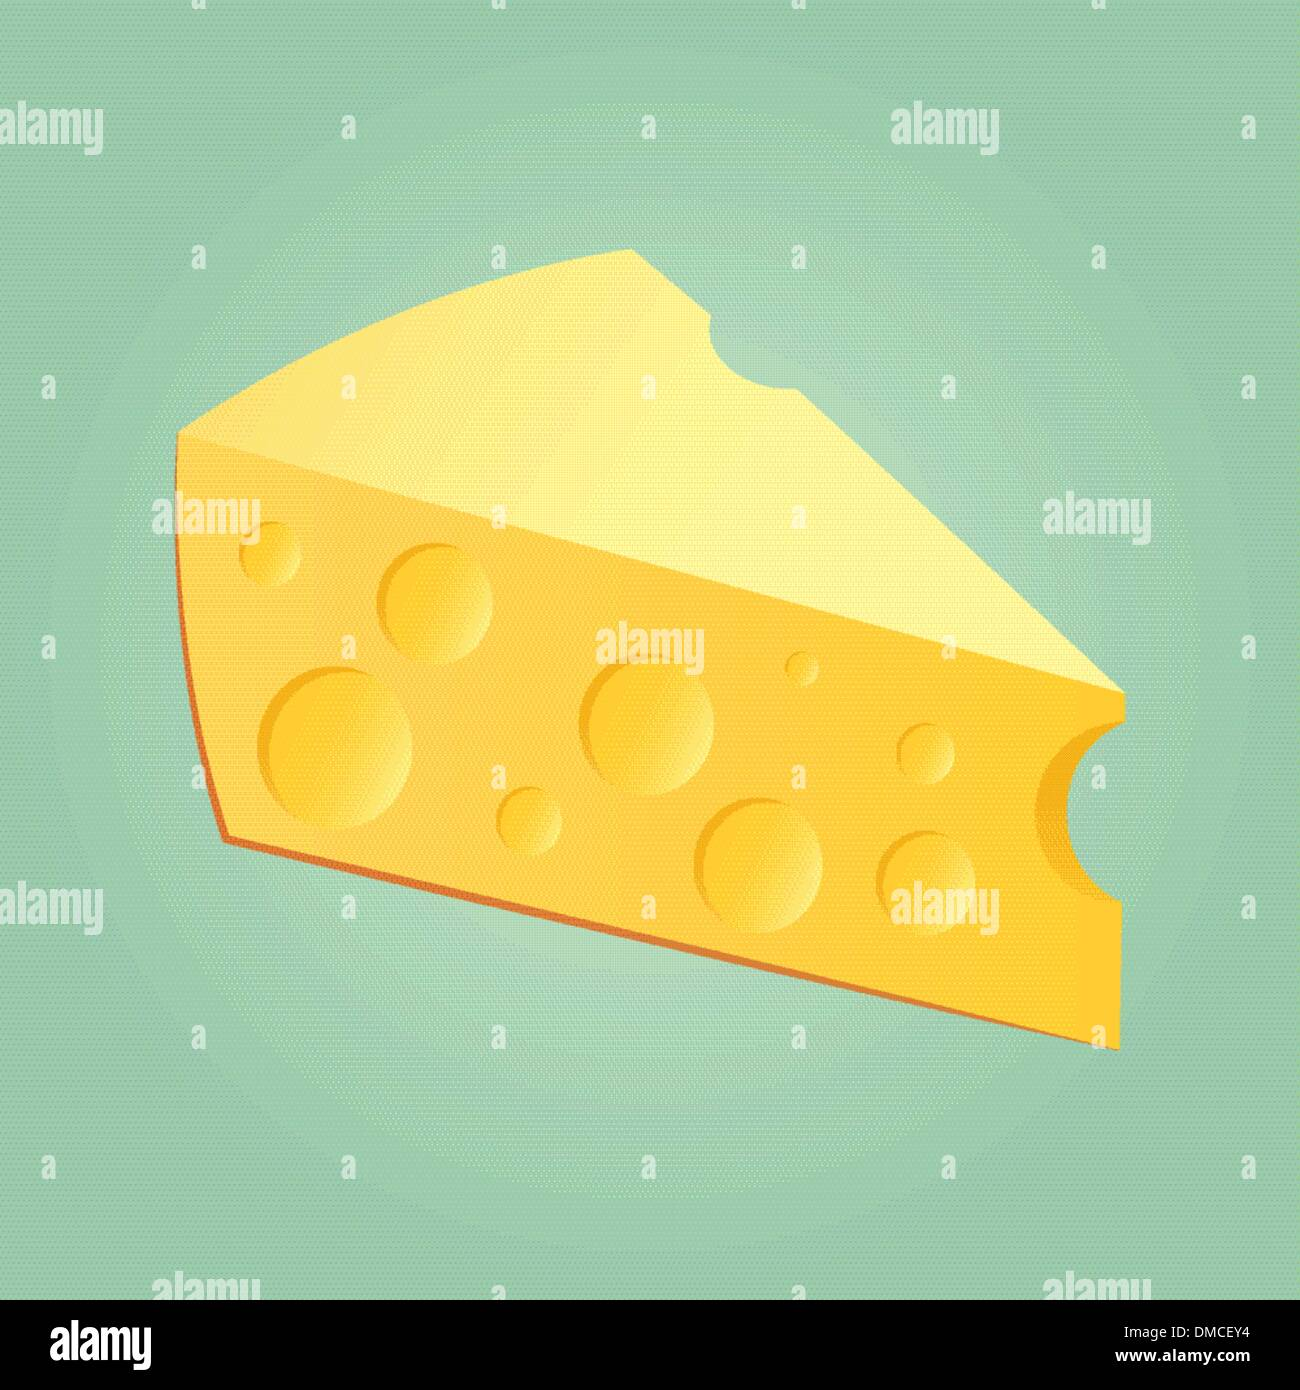 Slab Of Cheese Stock Vector